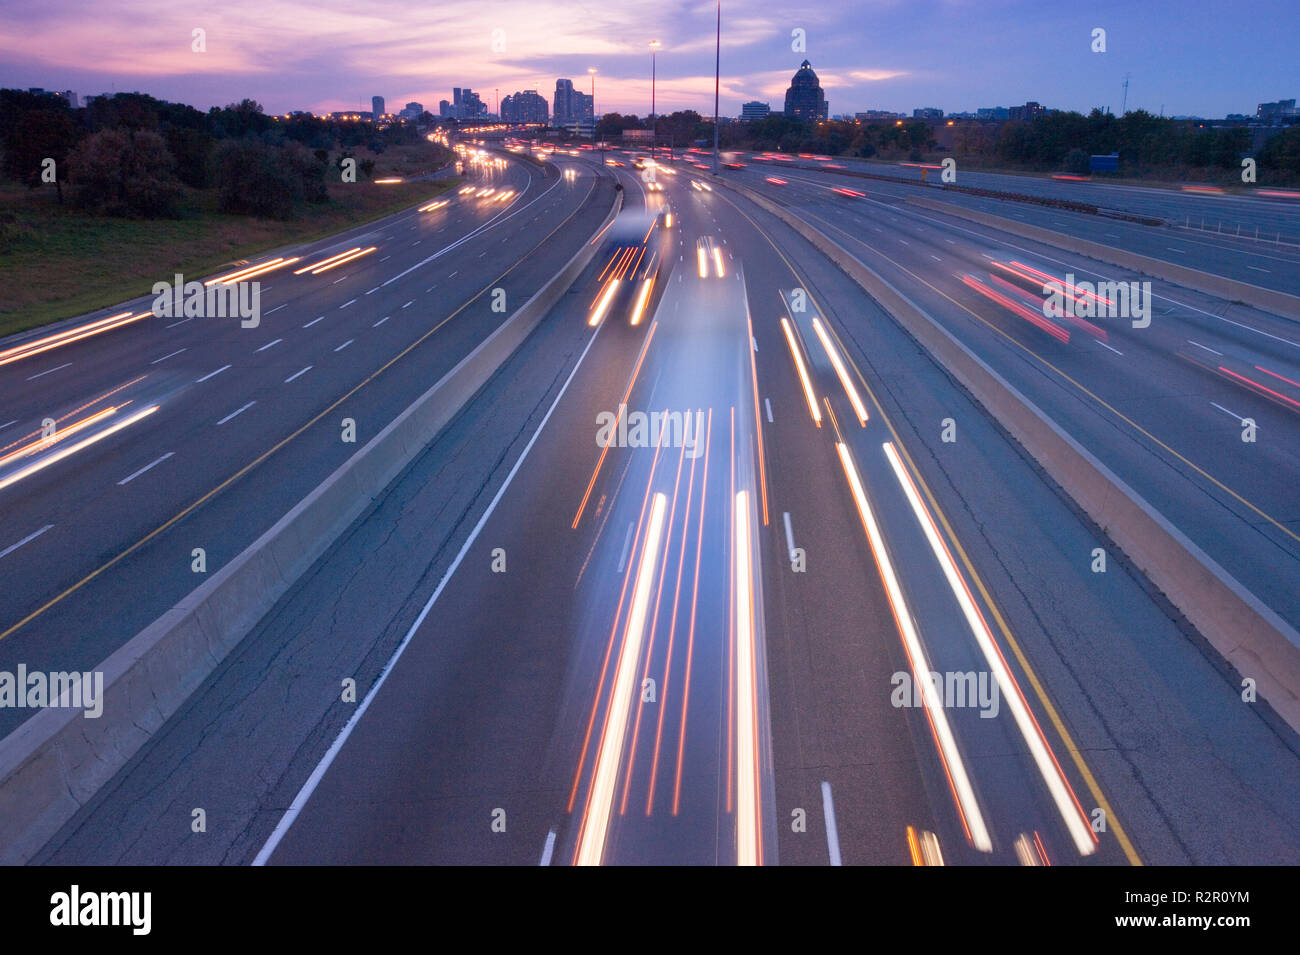 North America, Canada, Ontario, Toronto, traffic on highway 401 at dusk, one of busiest highways in world - Stock Image